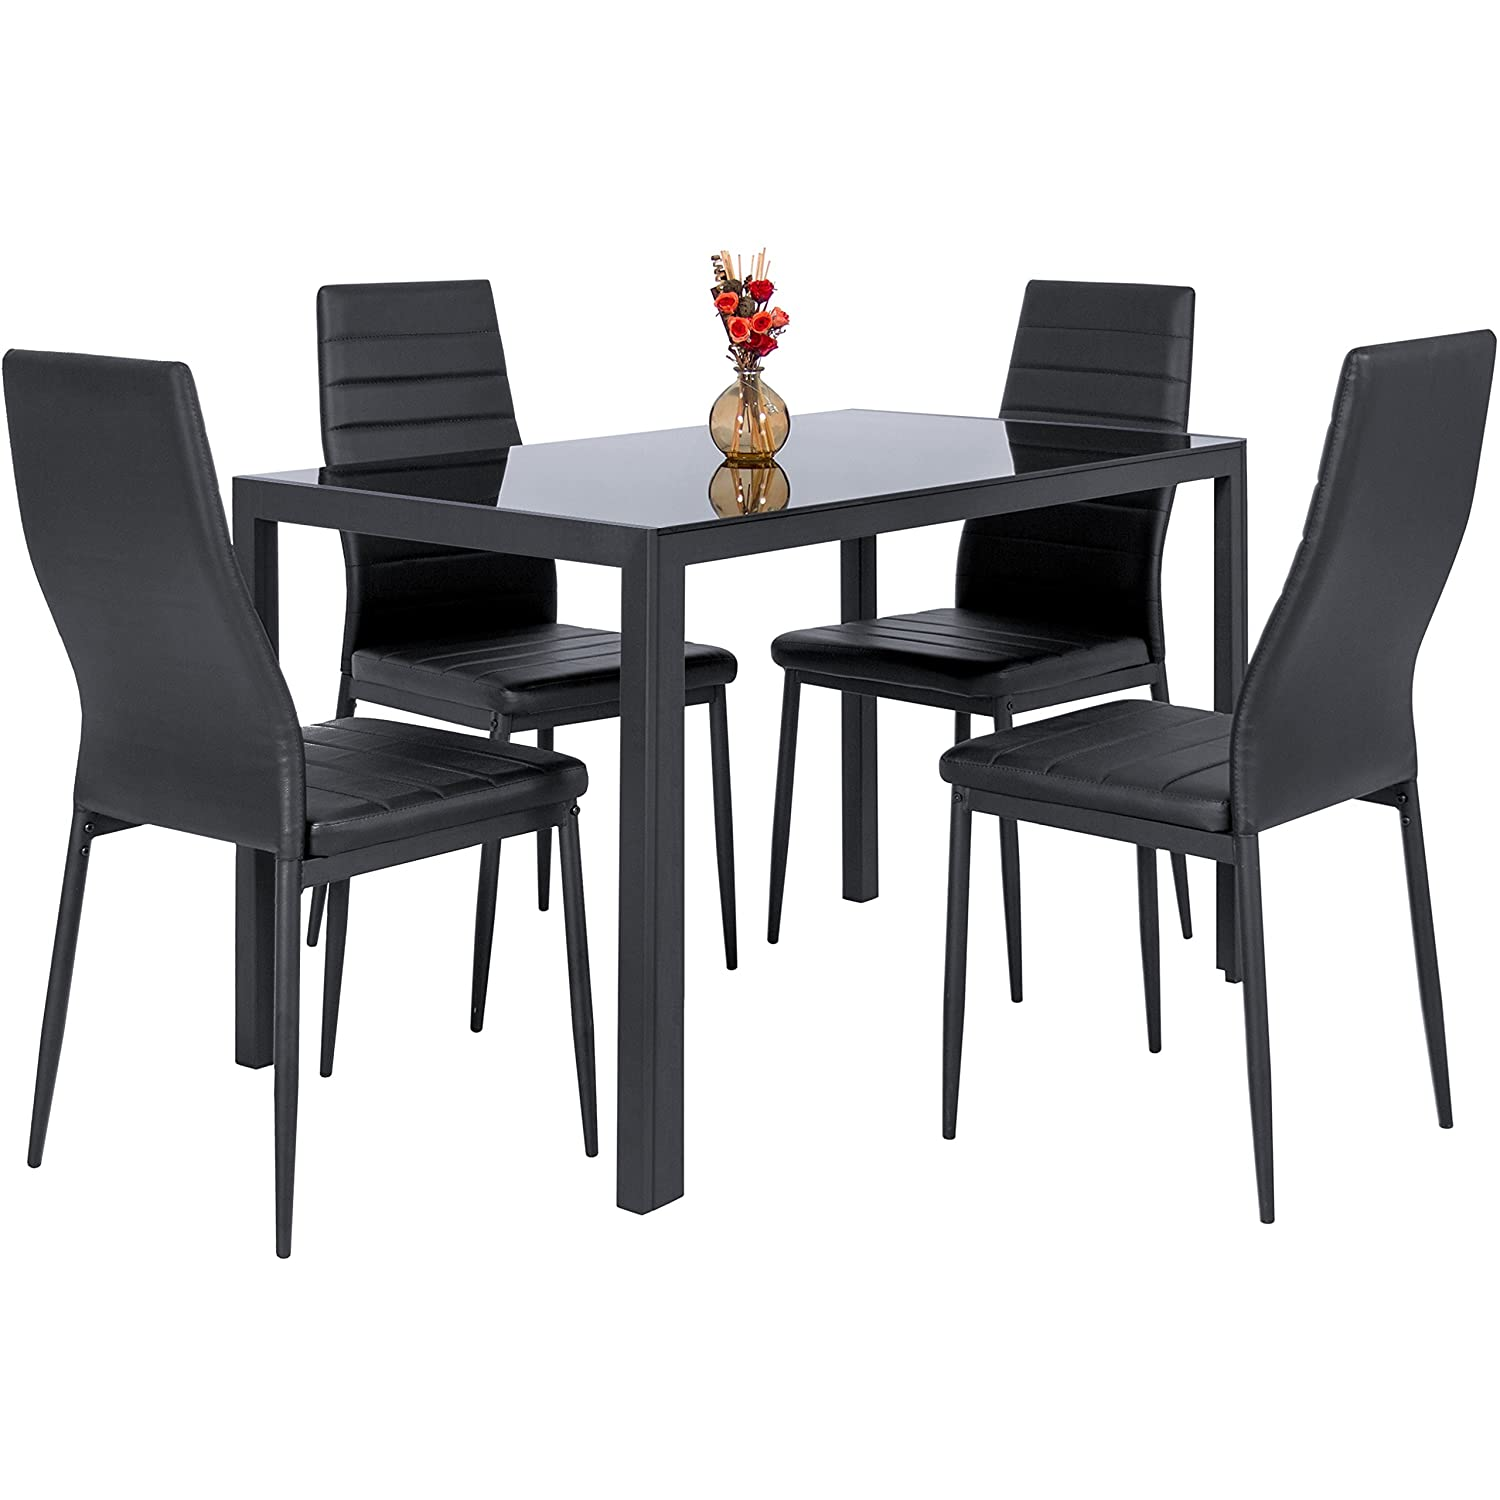 Perfect Best Choice Products 5 Piece Kitchen Dining Table Set W/ Glass Top And 4  Leather Chairs Dinette  Black